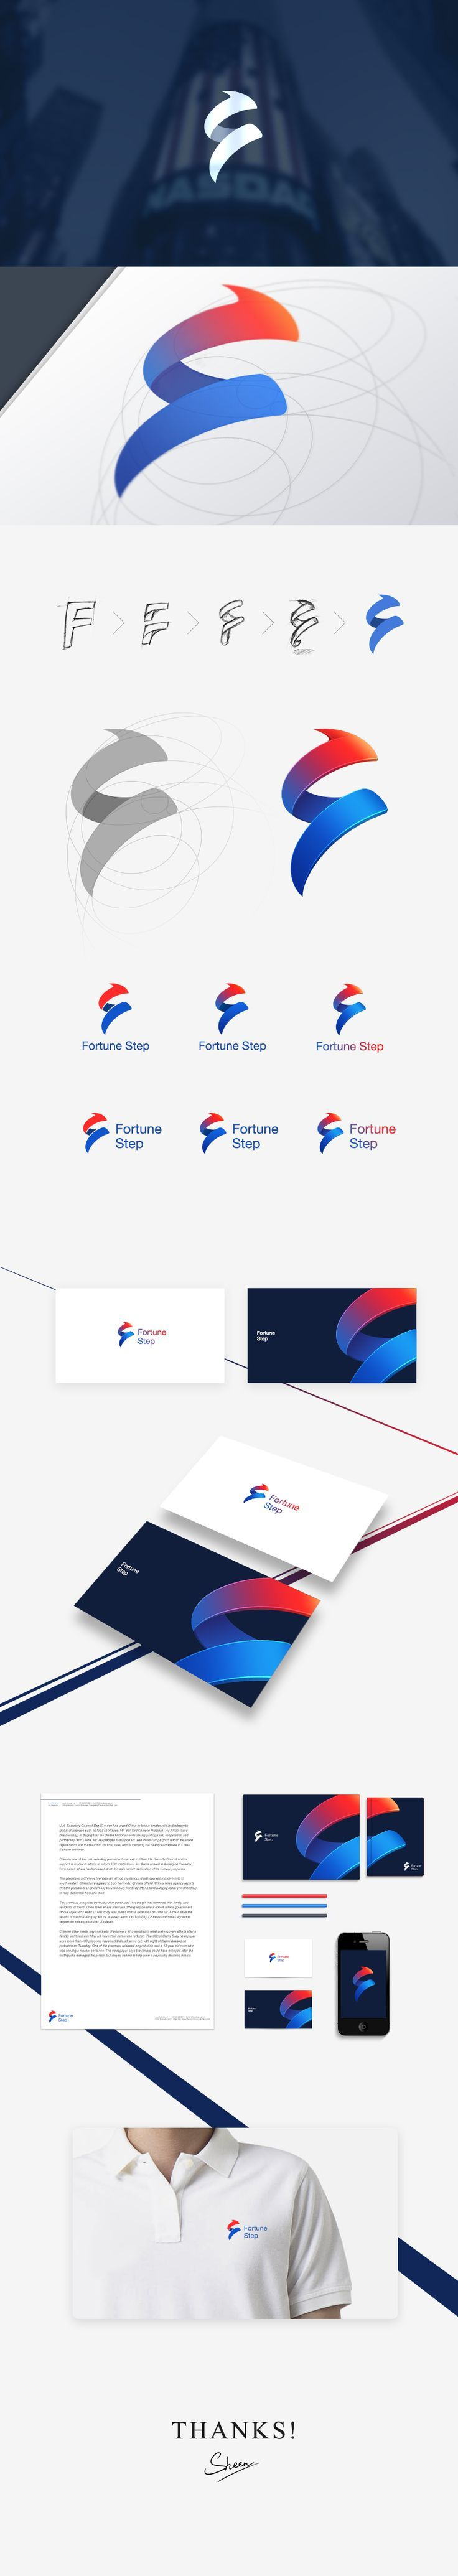 Fortune Step logo design and applied identity: